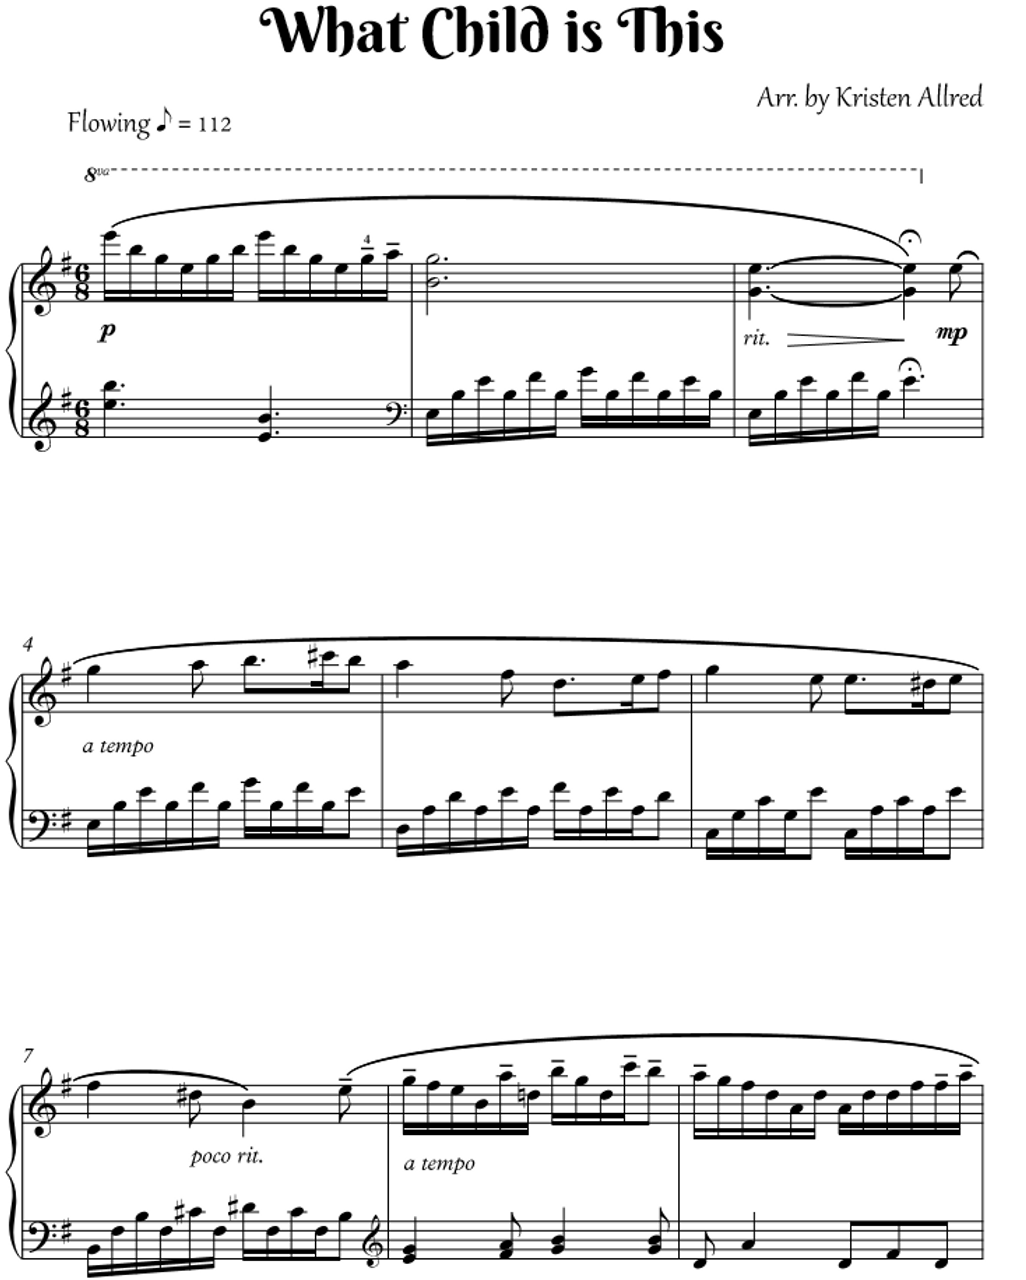 What Child is This ( Intermediate Piano Solo Sheet Music)